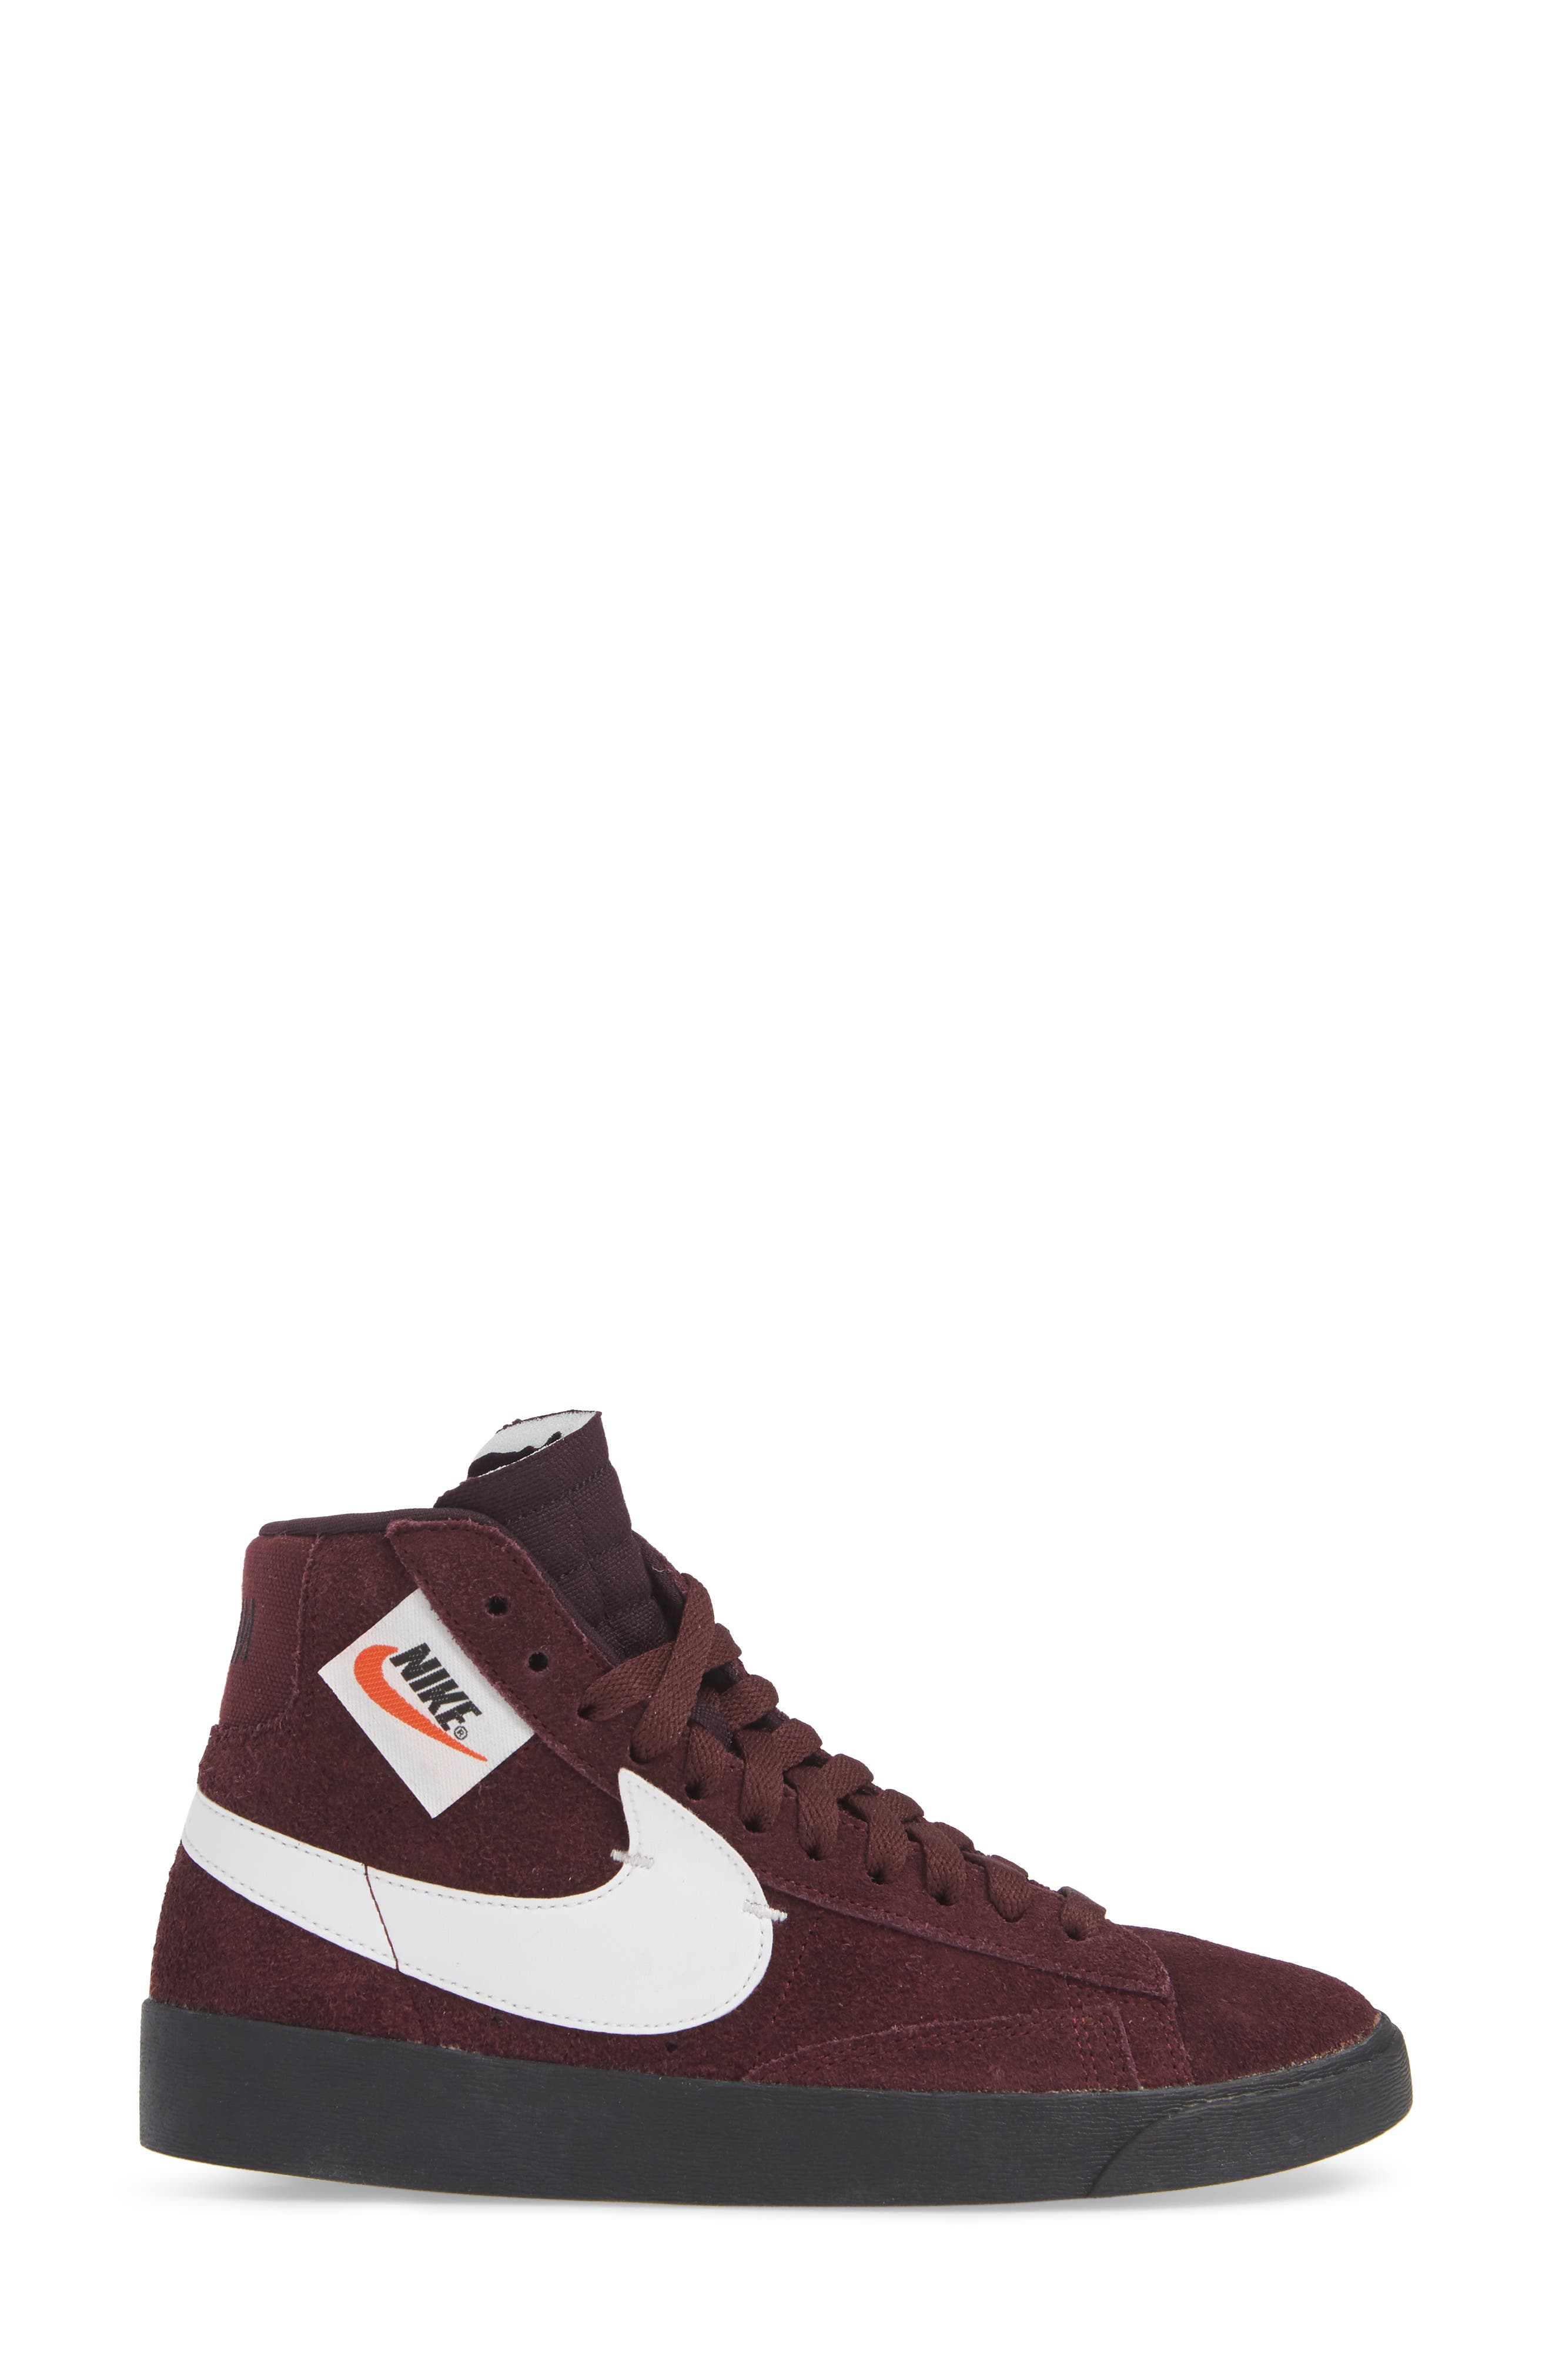 Blazer Mid Rebel Sneaker,                             Alternate thumbnail 3, color,                             BURGUNDY CRUSH/ ASH- WHITE